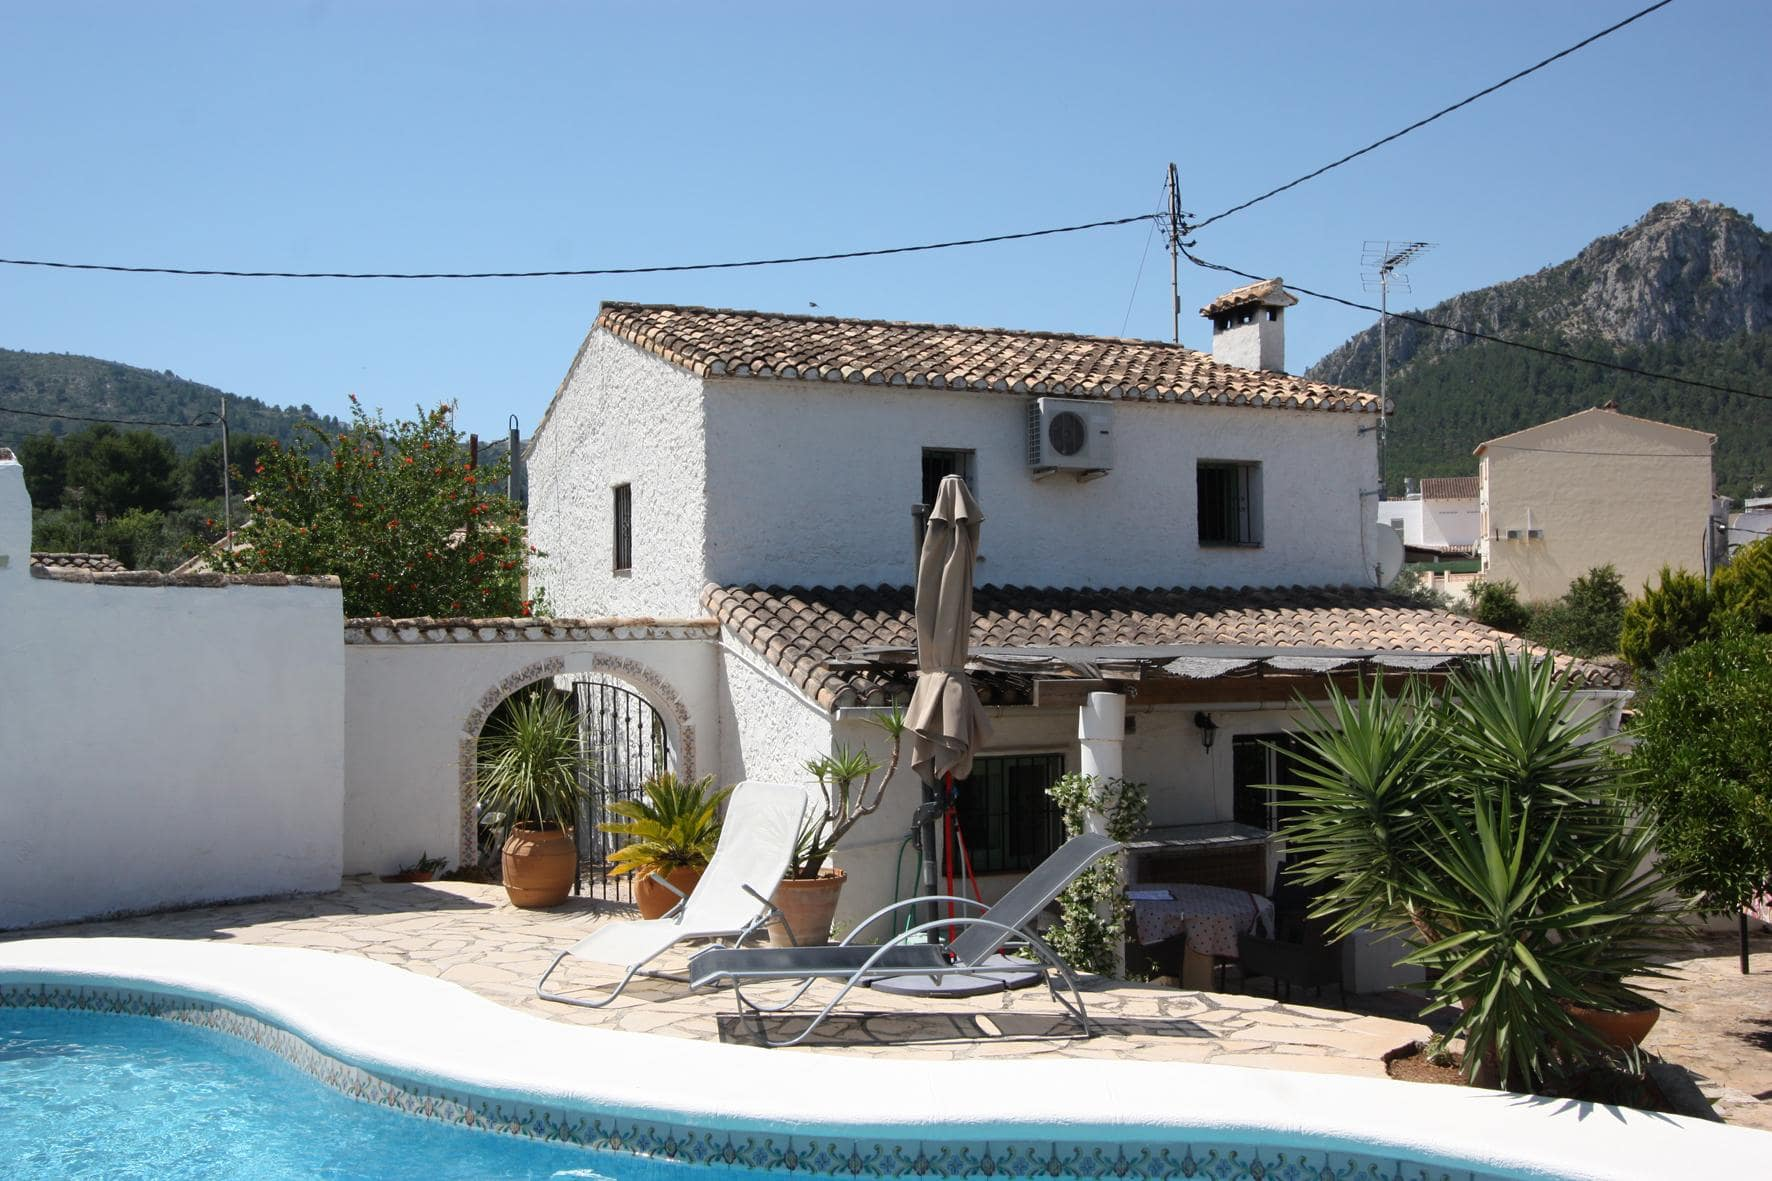 4 Bedroom Finca / Country House in Orba